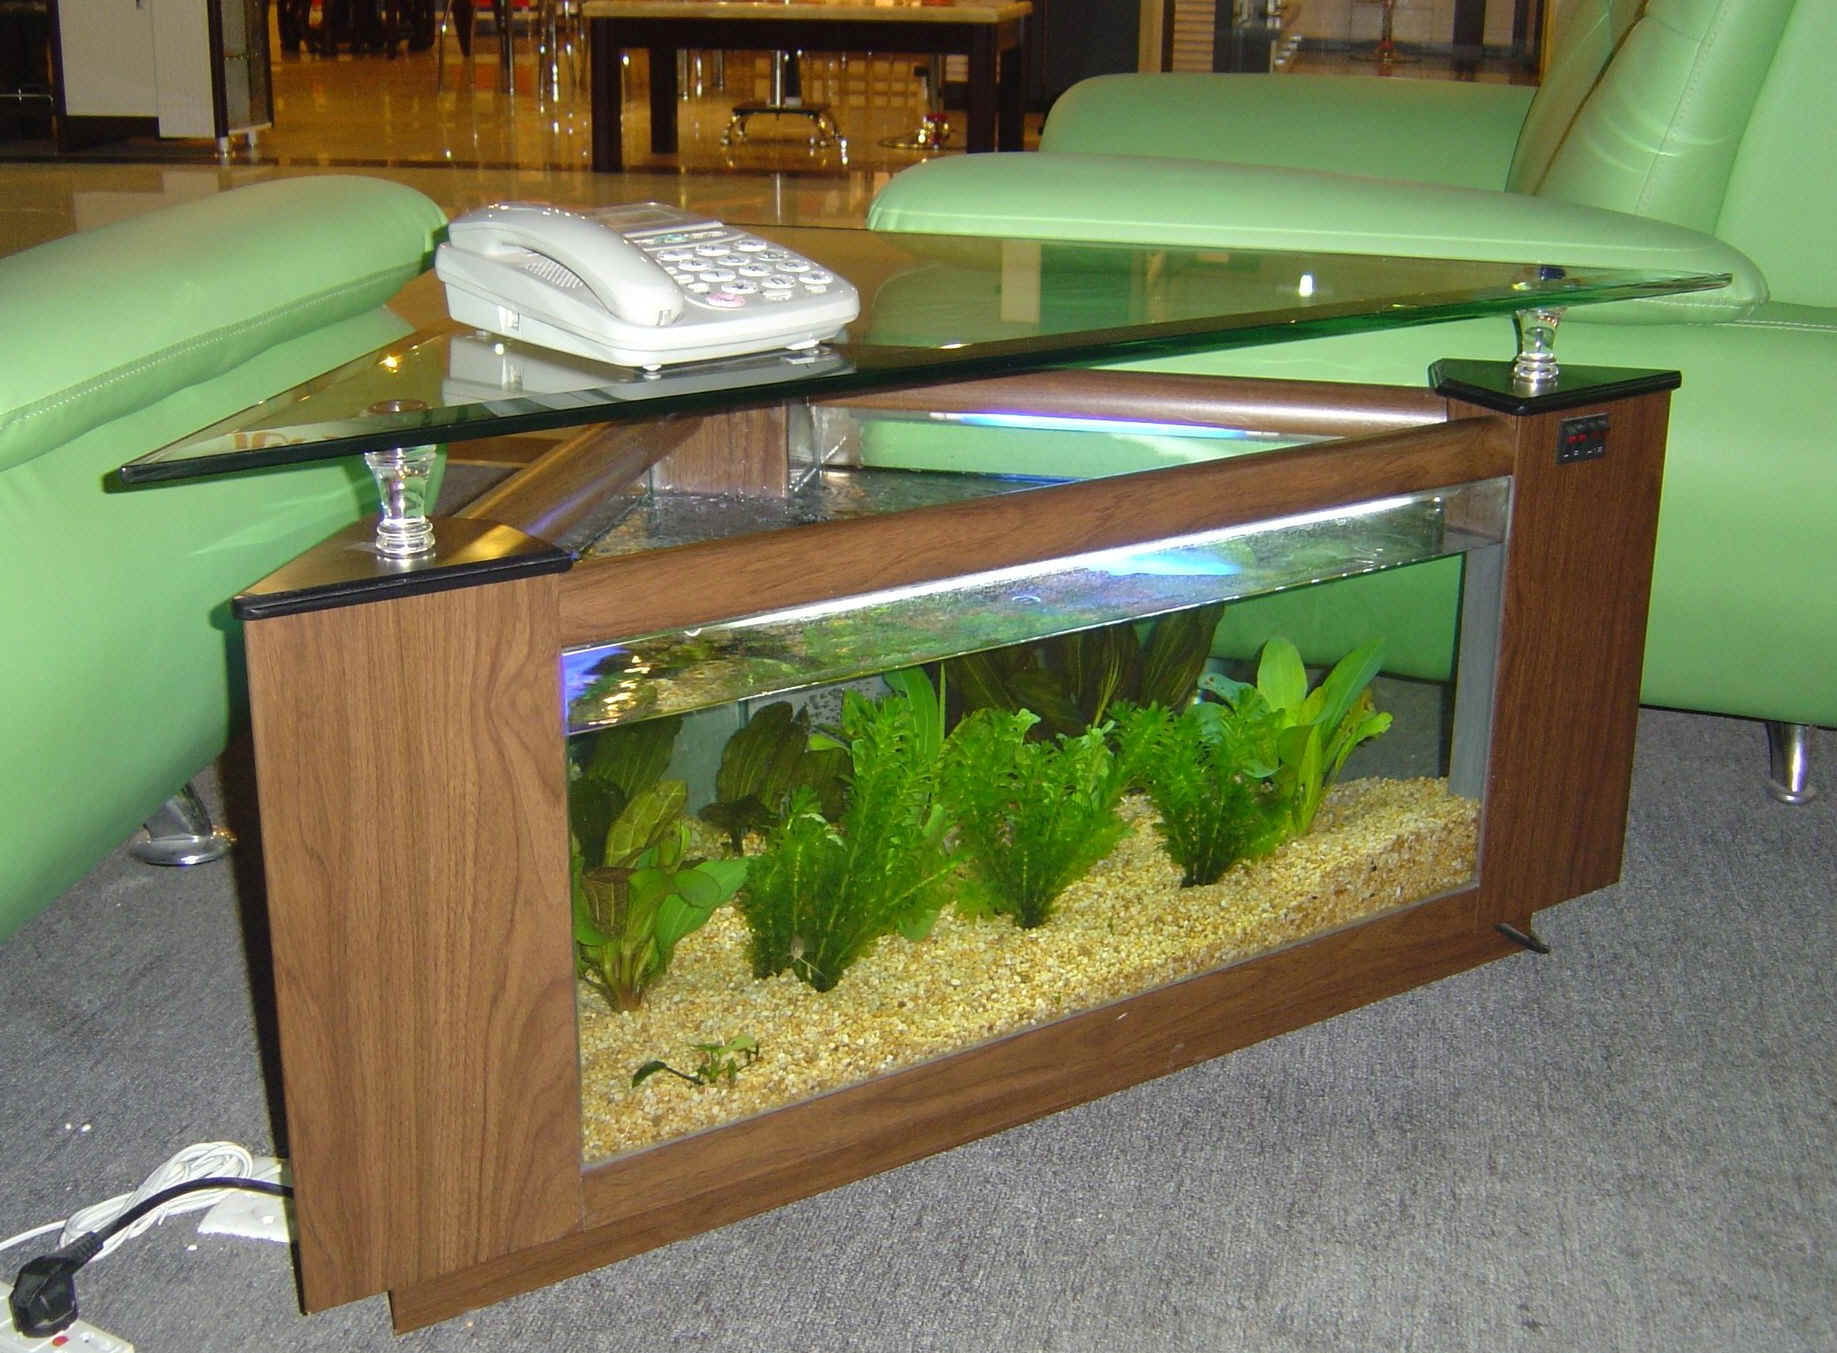 Fish tank living room table - Fish Tank Living Room Table